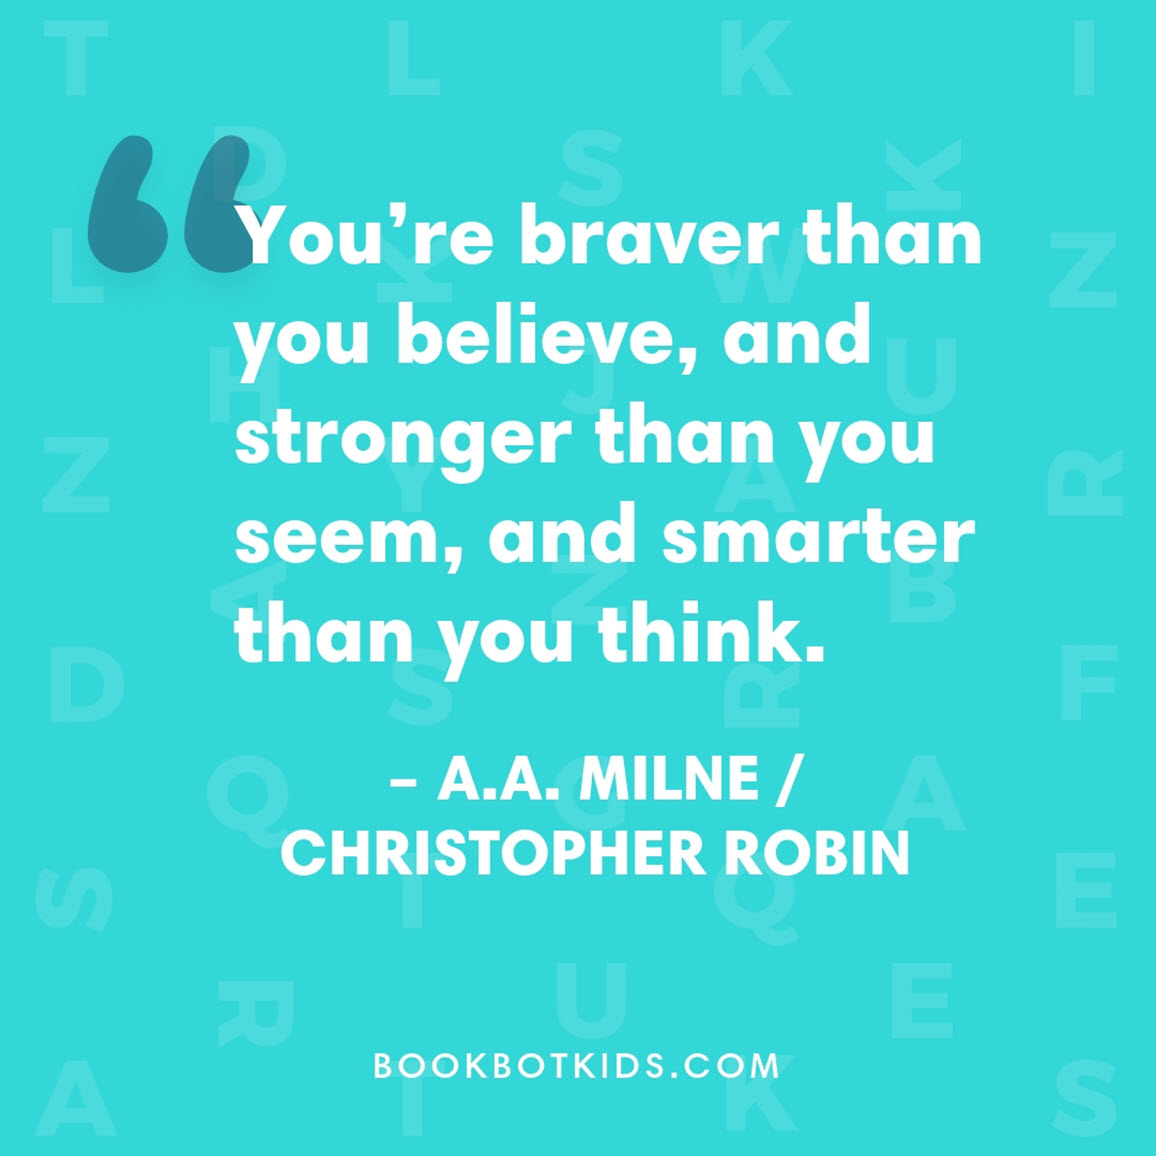 You're braver than you believe, and stronger than you seem, and smarter than you think. – A.A. Milne/Christopher Robin